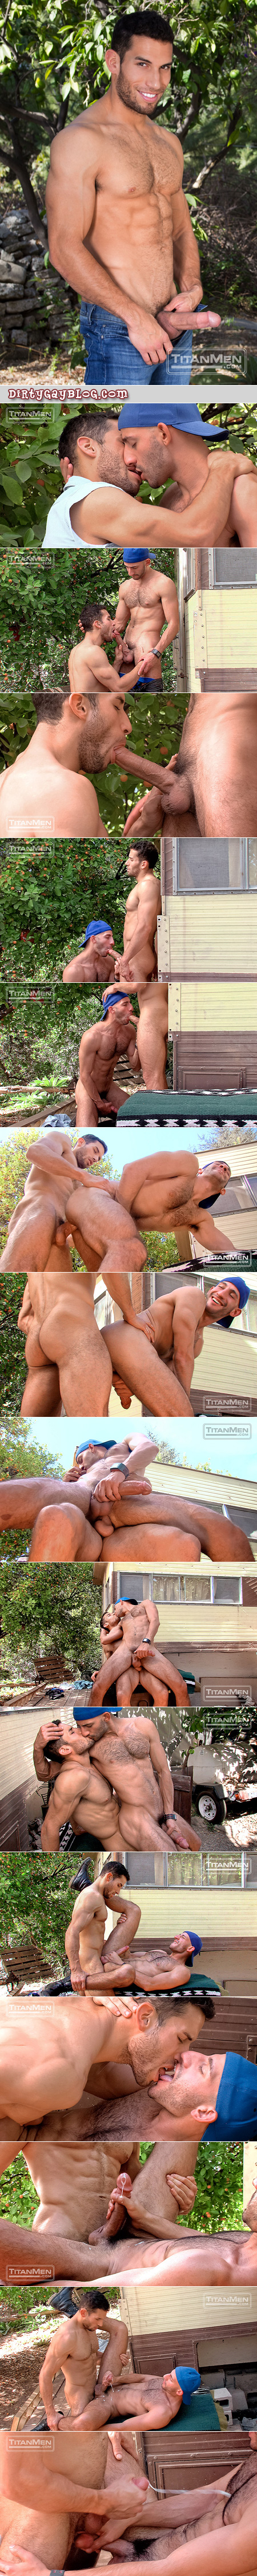 Horse hung ripped muscle stud bottoms for a muscular hunk with a thick cock.